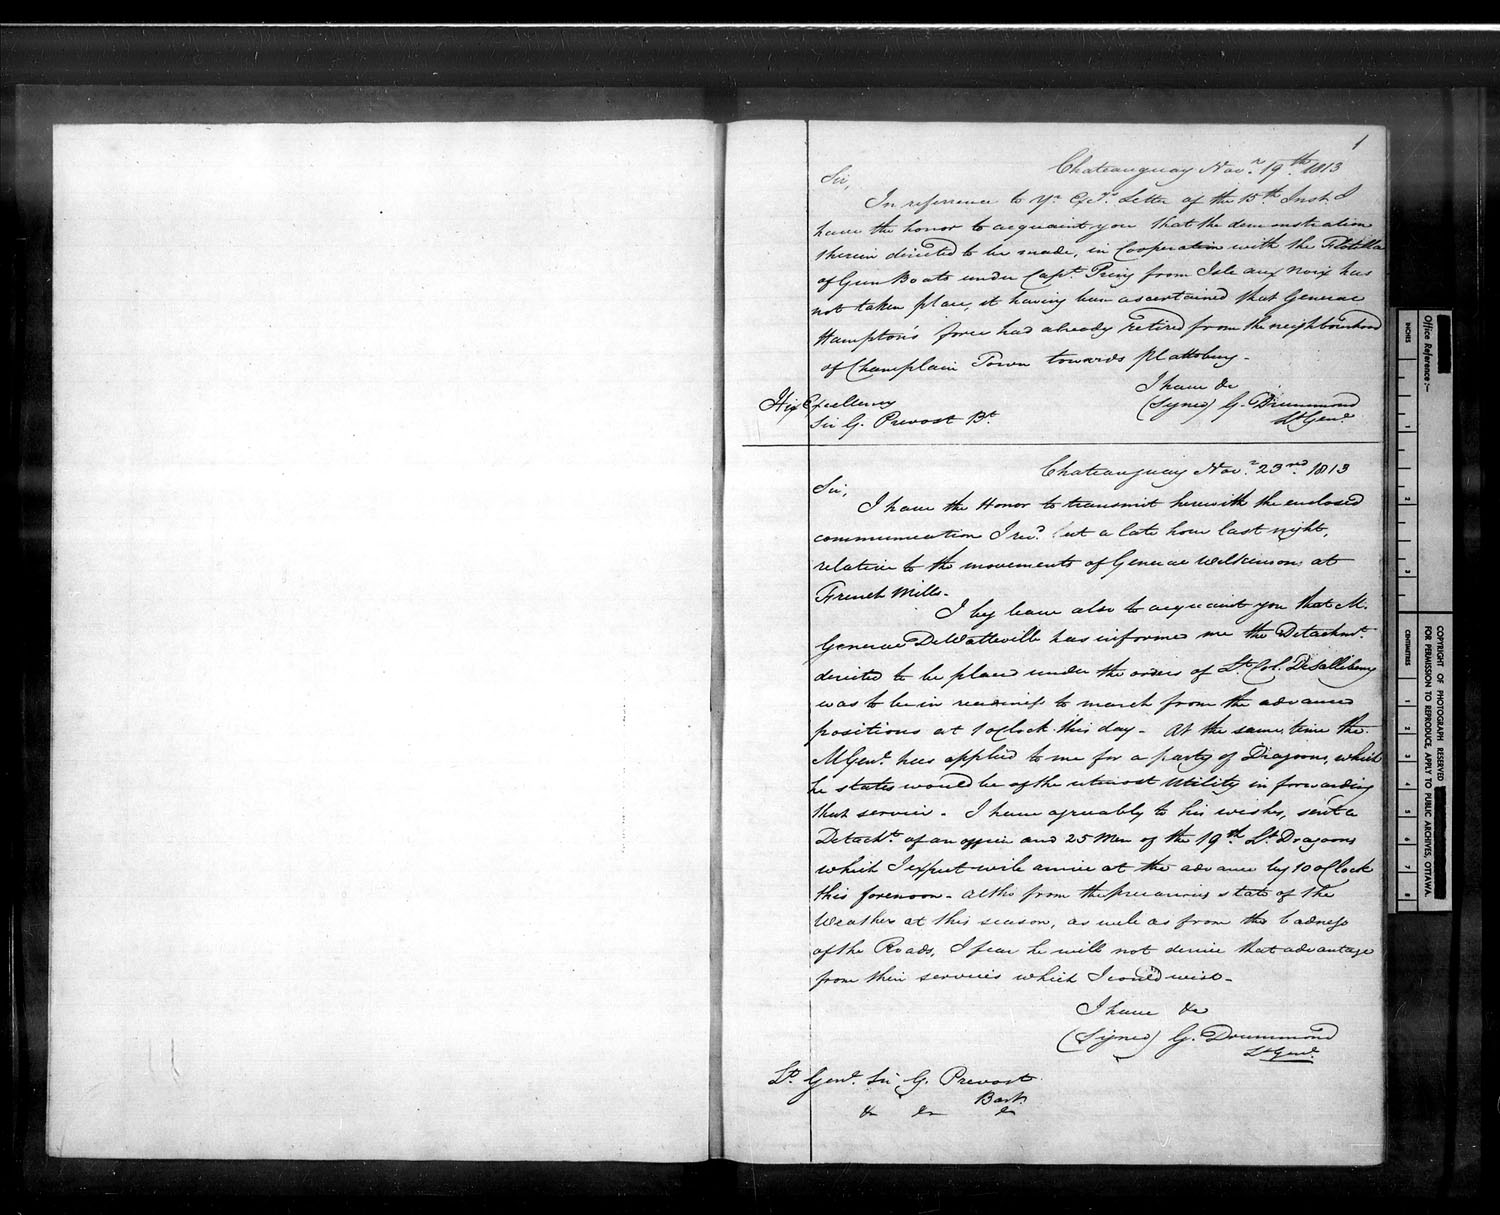 Title: War of 1812: Miscellaneous Records - Mikan Number:  - Microform: c-2226